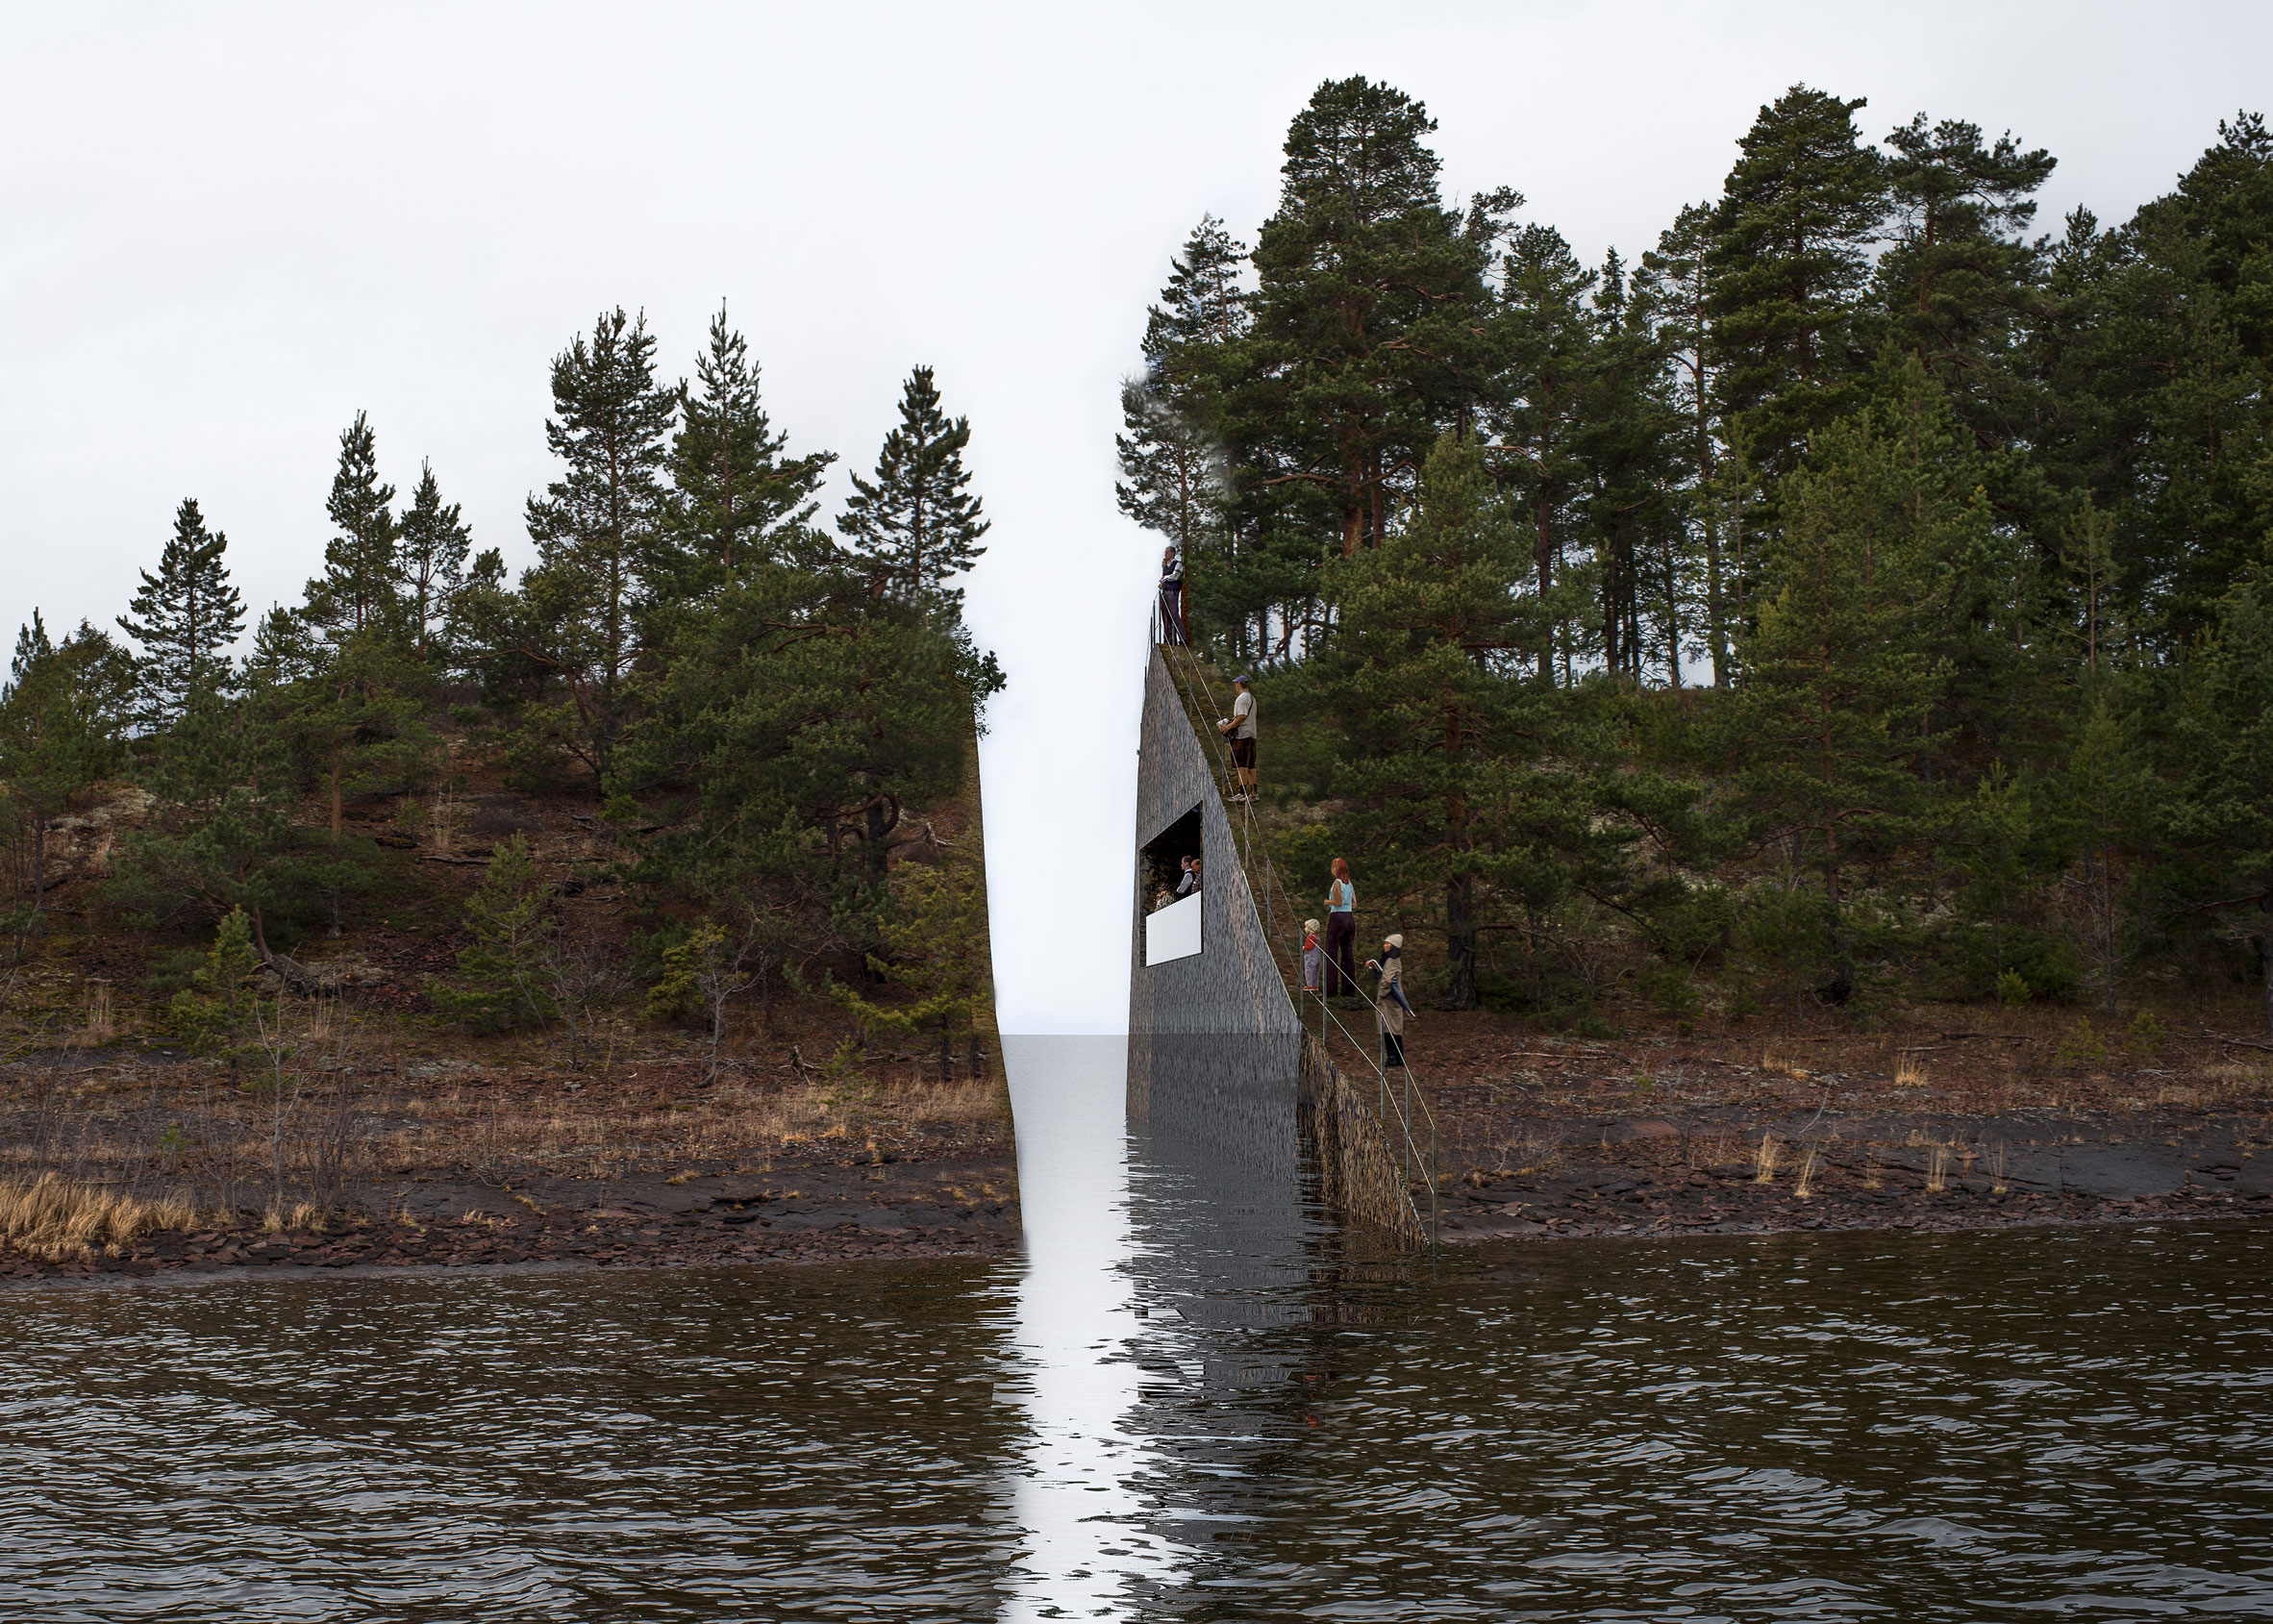 The Norwegian government has offered to abandon plans for a memorial to the victims of the 2011 terrorist attacks